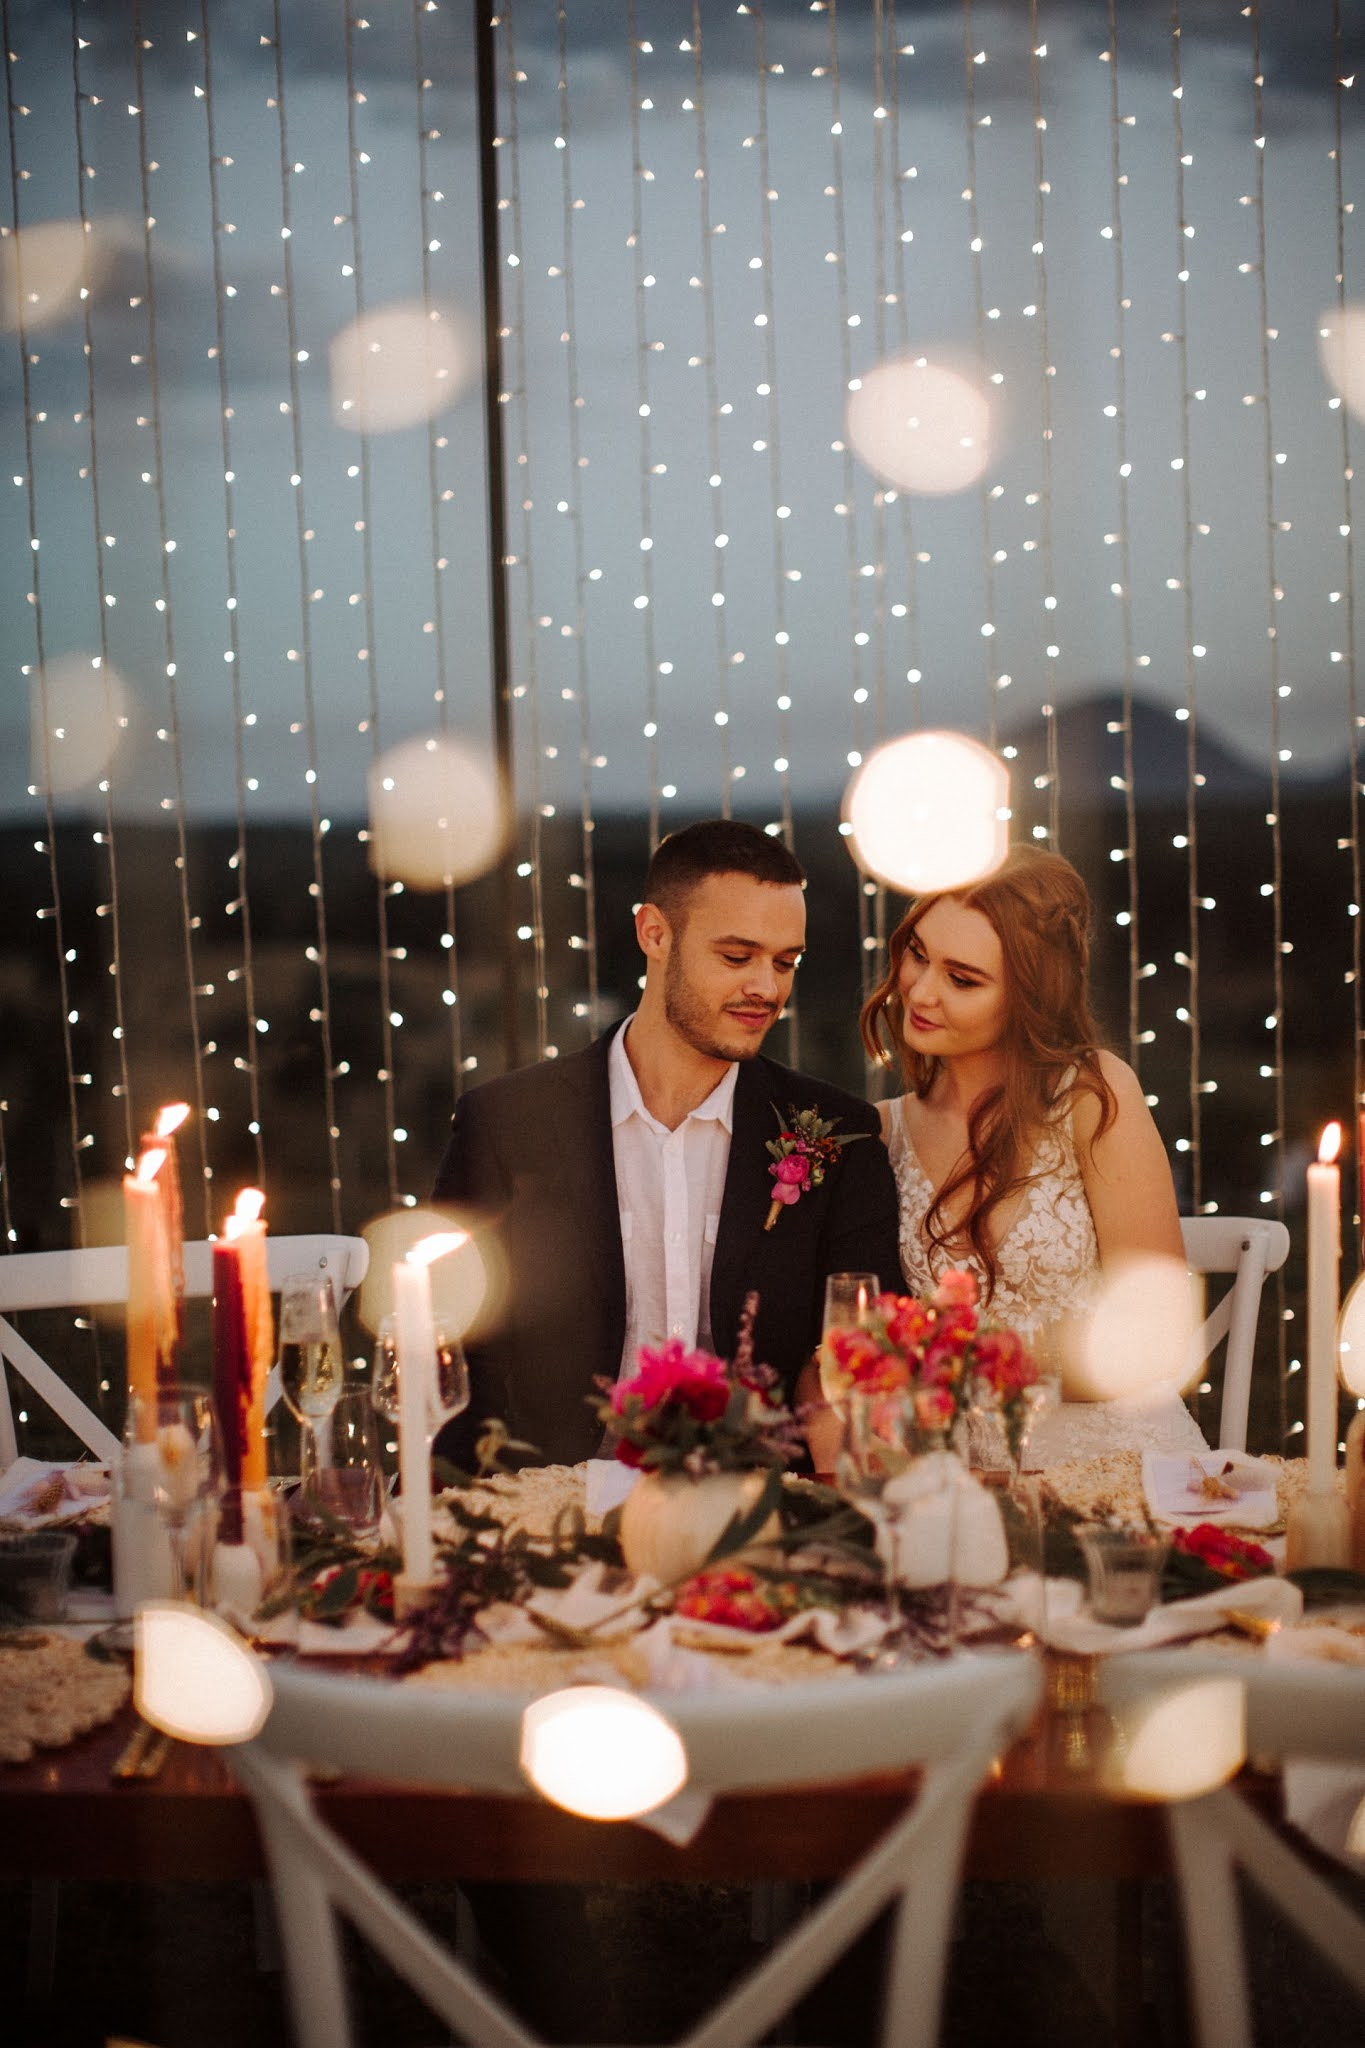 STYLED SHOOT: ELEGANCE WITH MOUNTAIN VIEWS | GLASS HOUSE COUNTRY WEDDINGS SHOOT BRISBANE QLD